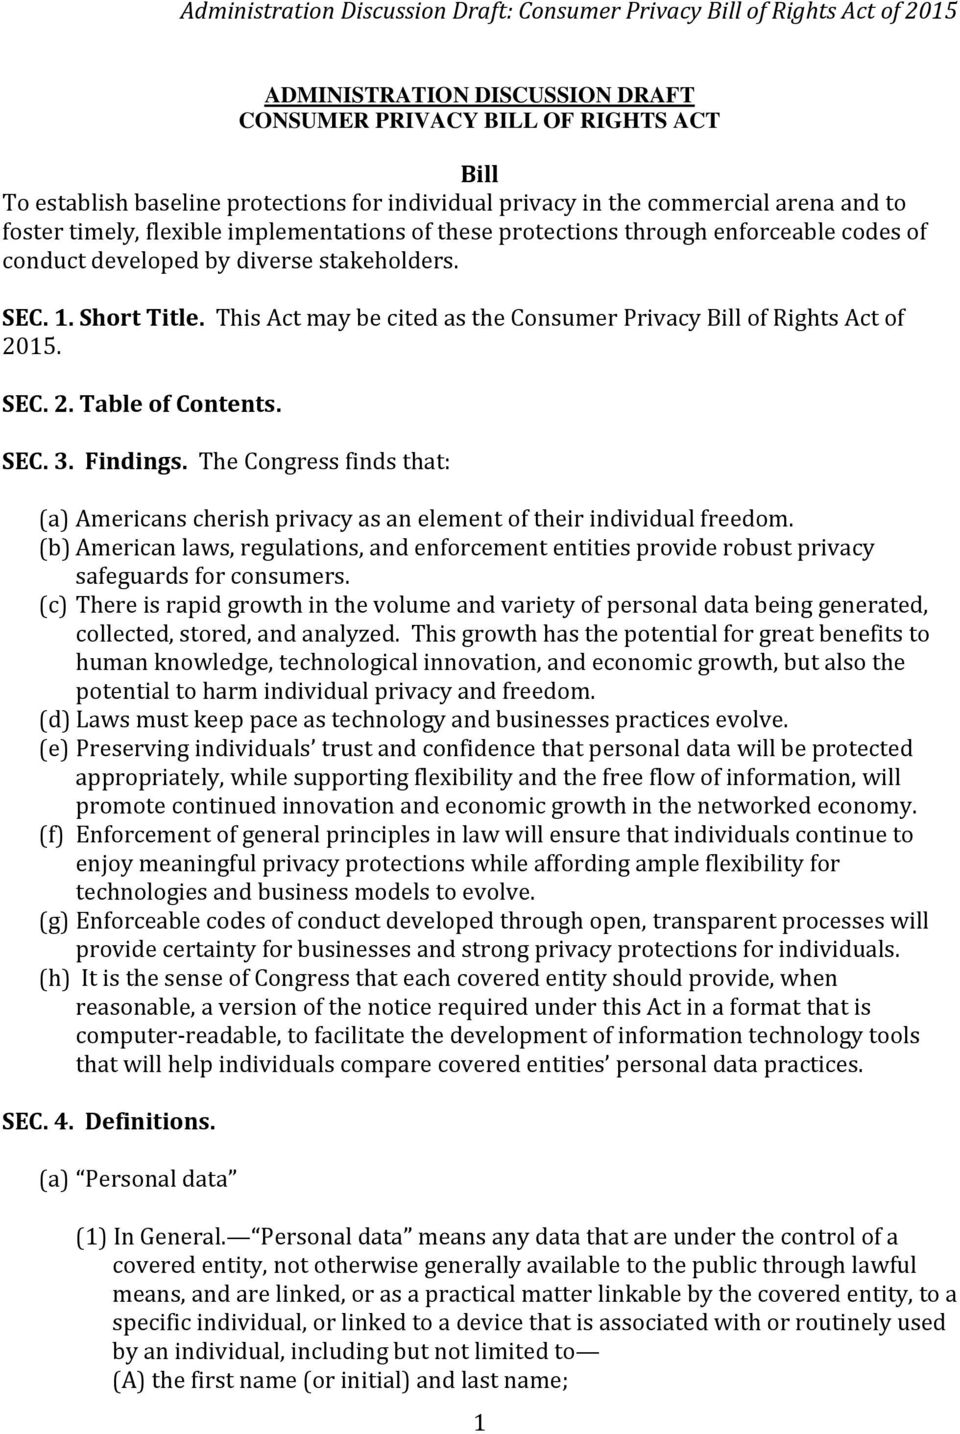 This Act may be cited as the Consumer Privacy Bill of Rights Act of 2015. SEC. 2. Table of Contents. SEC. 3. Findings.